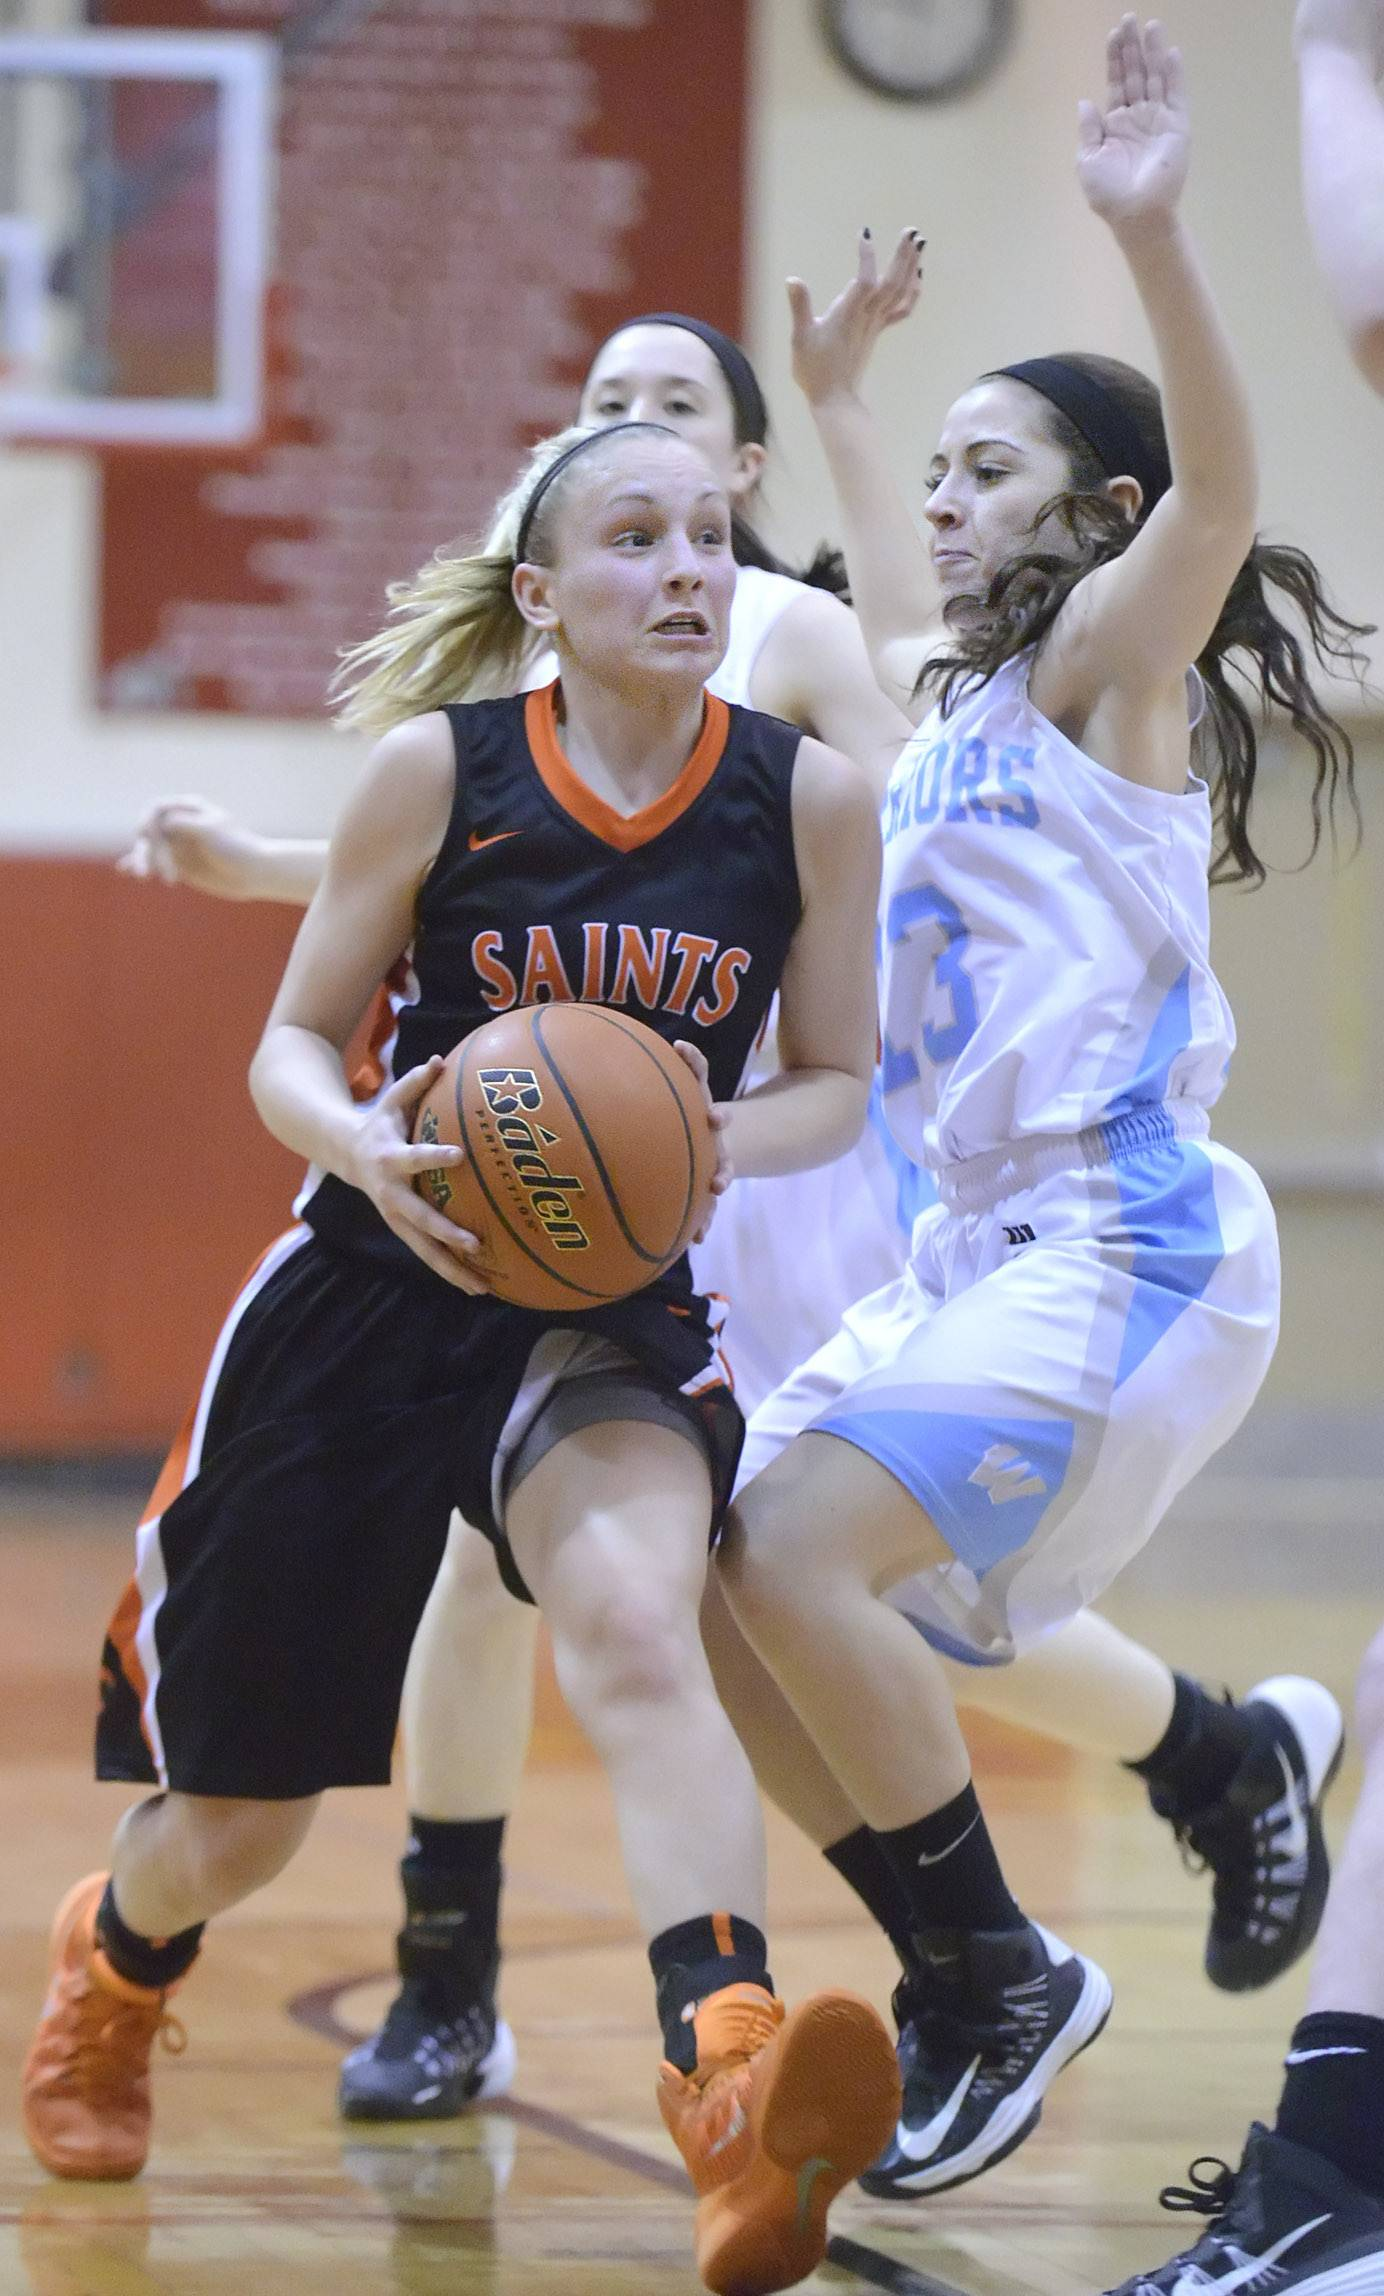 St. Charles East's Katelyn Claussner maneuvers her way around Willowbrook's Allison Torres Tuesday at Batavia.